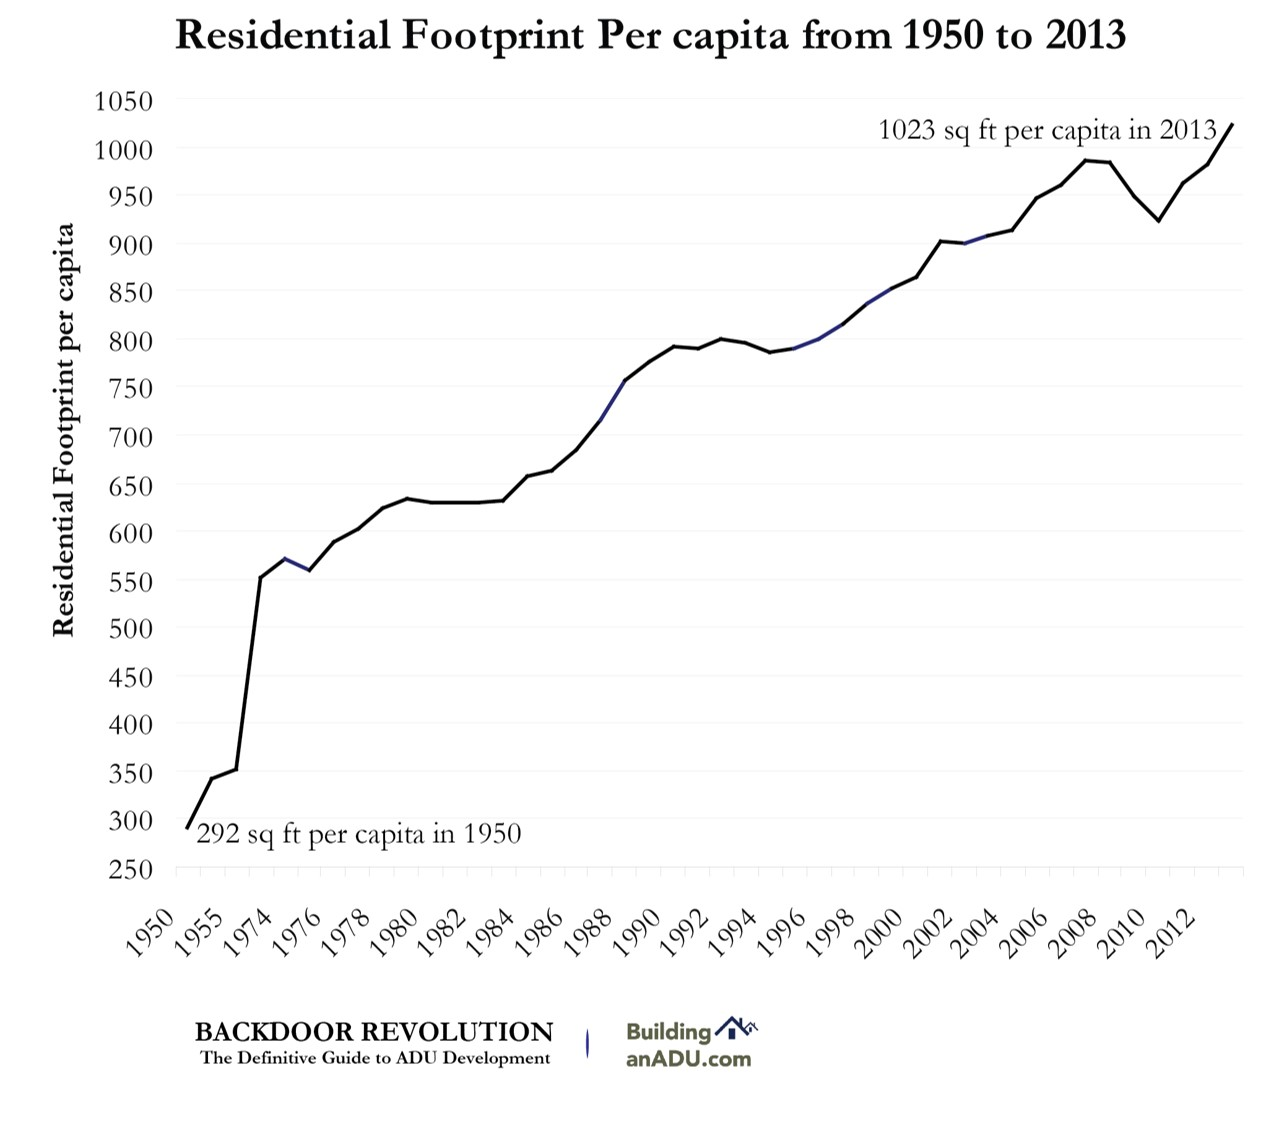 Since the 1950s, shrinking household sizes and the growing size of residential structures has resulted in dramatic increases of per capita residential footprints.